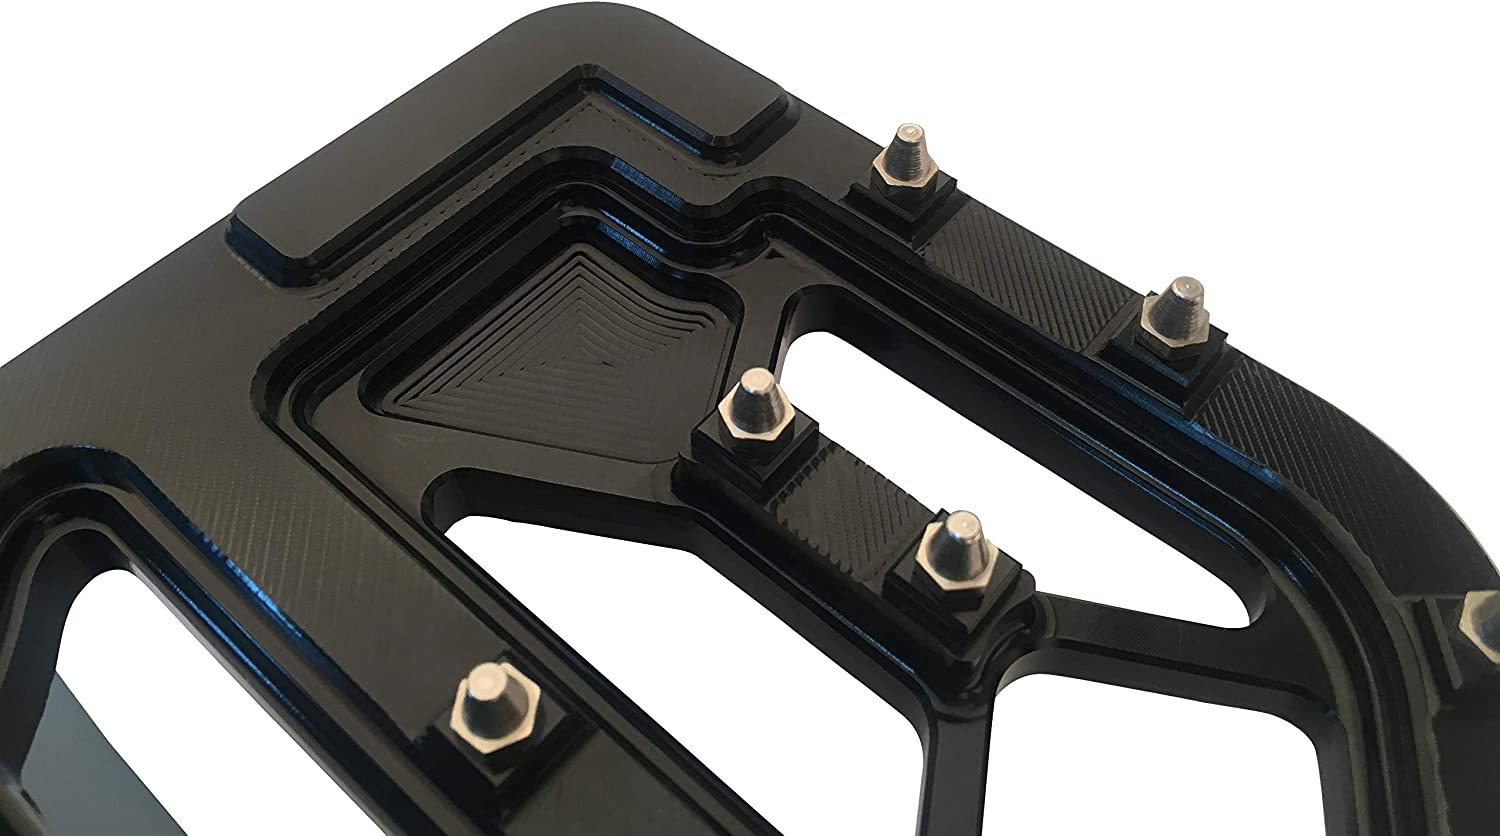 Black Goldfire 1 Pair Wide MX Offroad Chopper Bobber Style Front Driver Bagger Floorboards with Non-Slip Traction for 1983-2019 Harley Touring Motorcycles